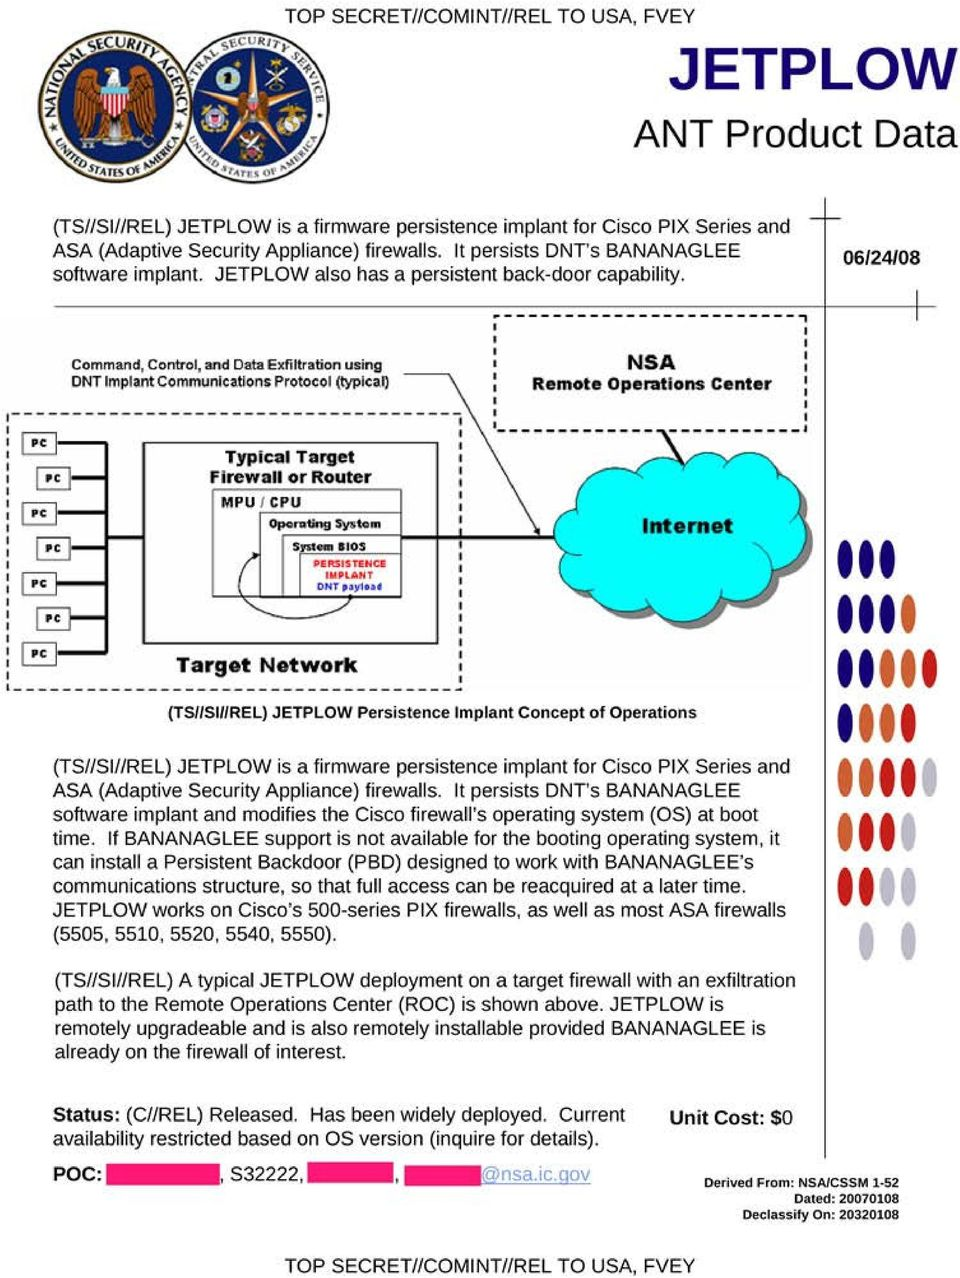 "06/24/08 "" Command, Control, and Data Exfiltration using DNT mpl ant Communications Protocol (typlcaq Typical Target Firewall or Router MPU CPU Opo""'ting 5yotom s - os PE'tSSTEHCE MJlAHT OHT,olfl"